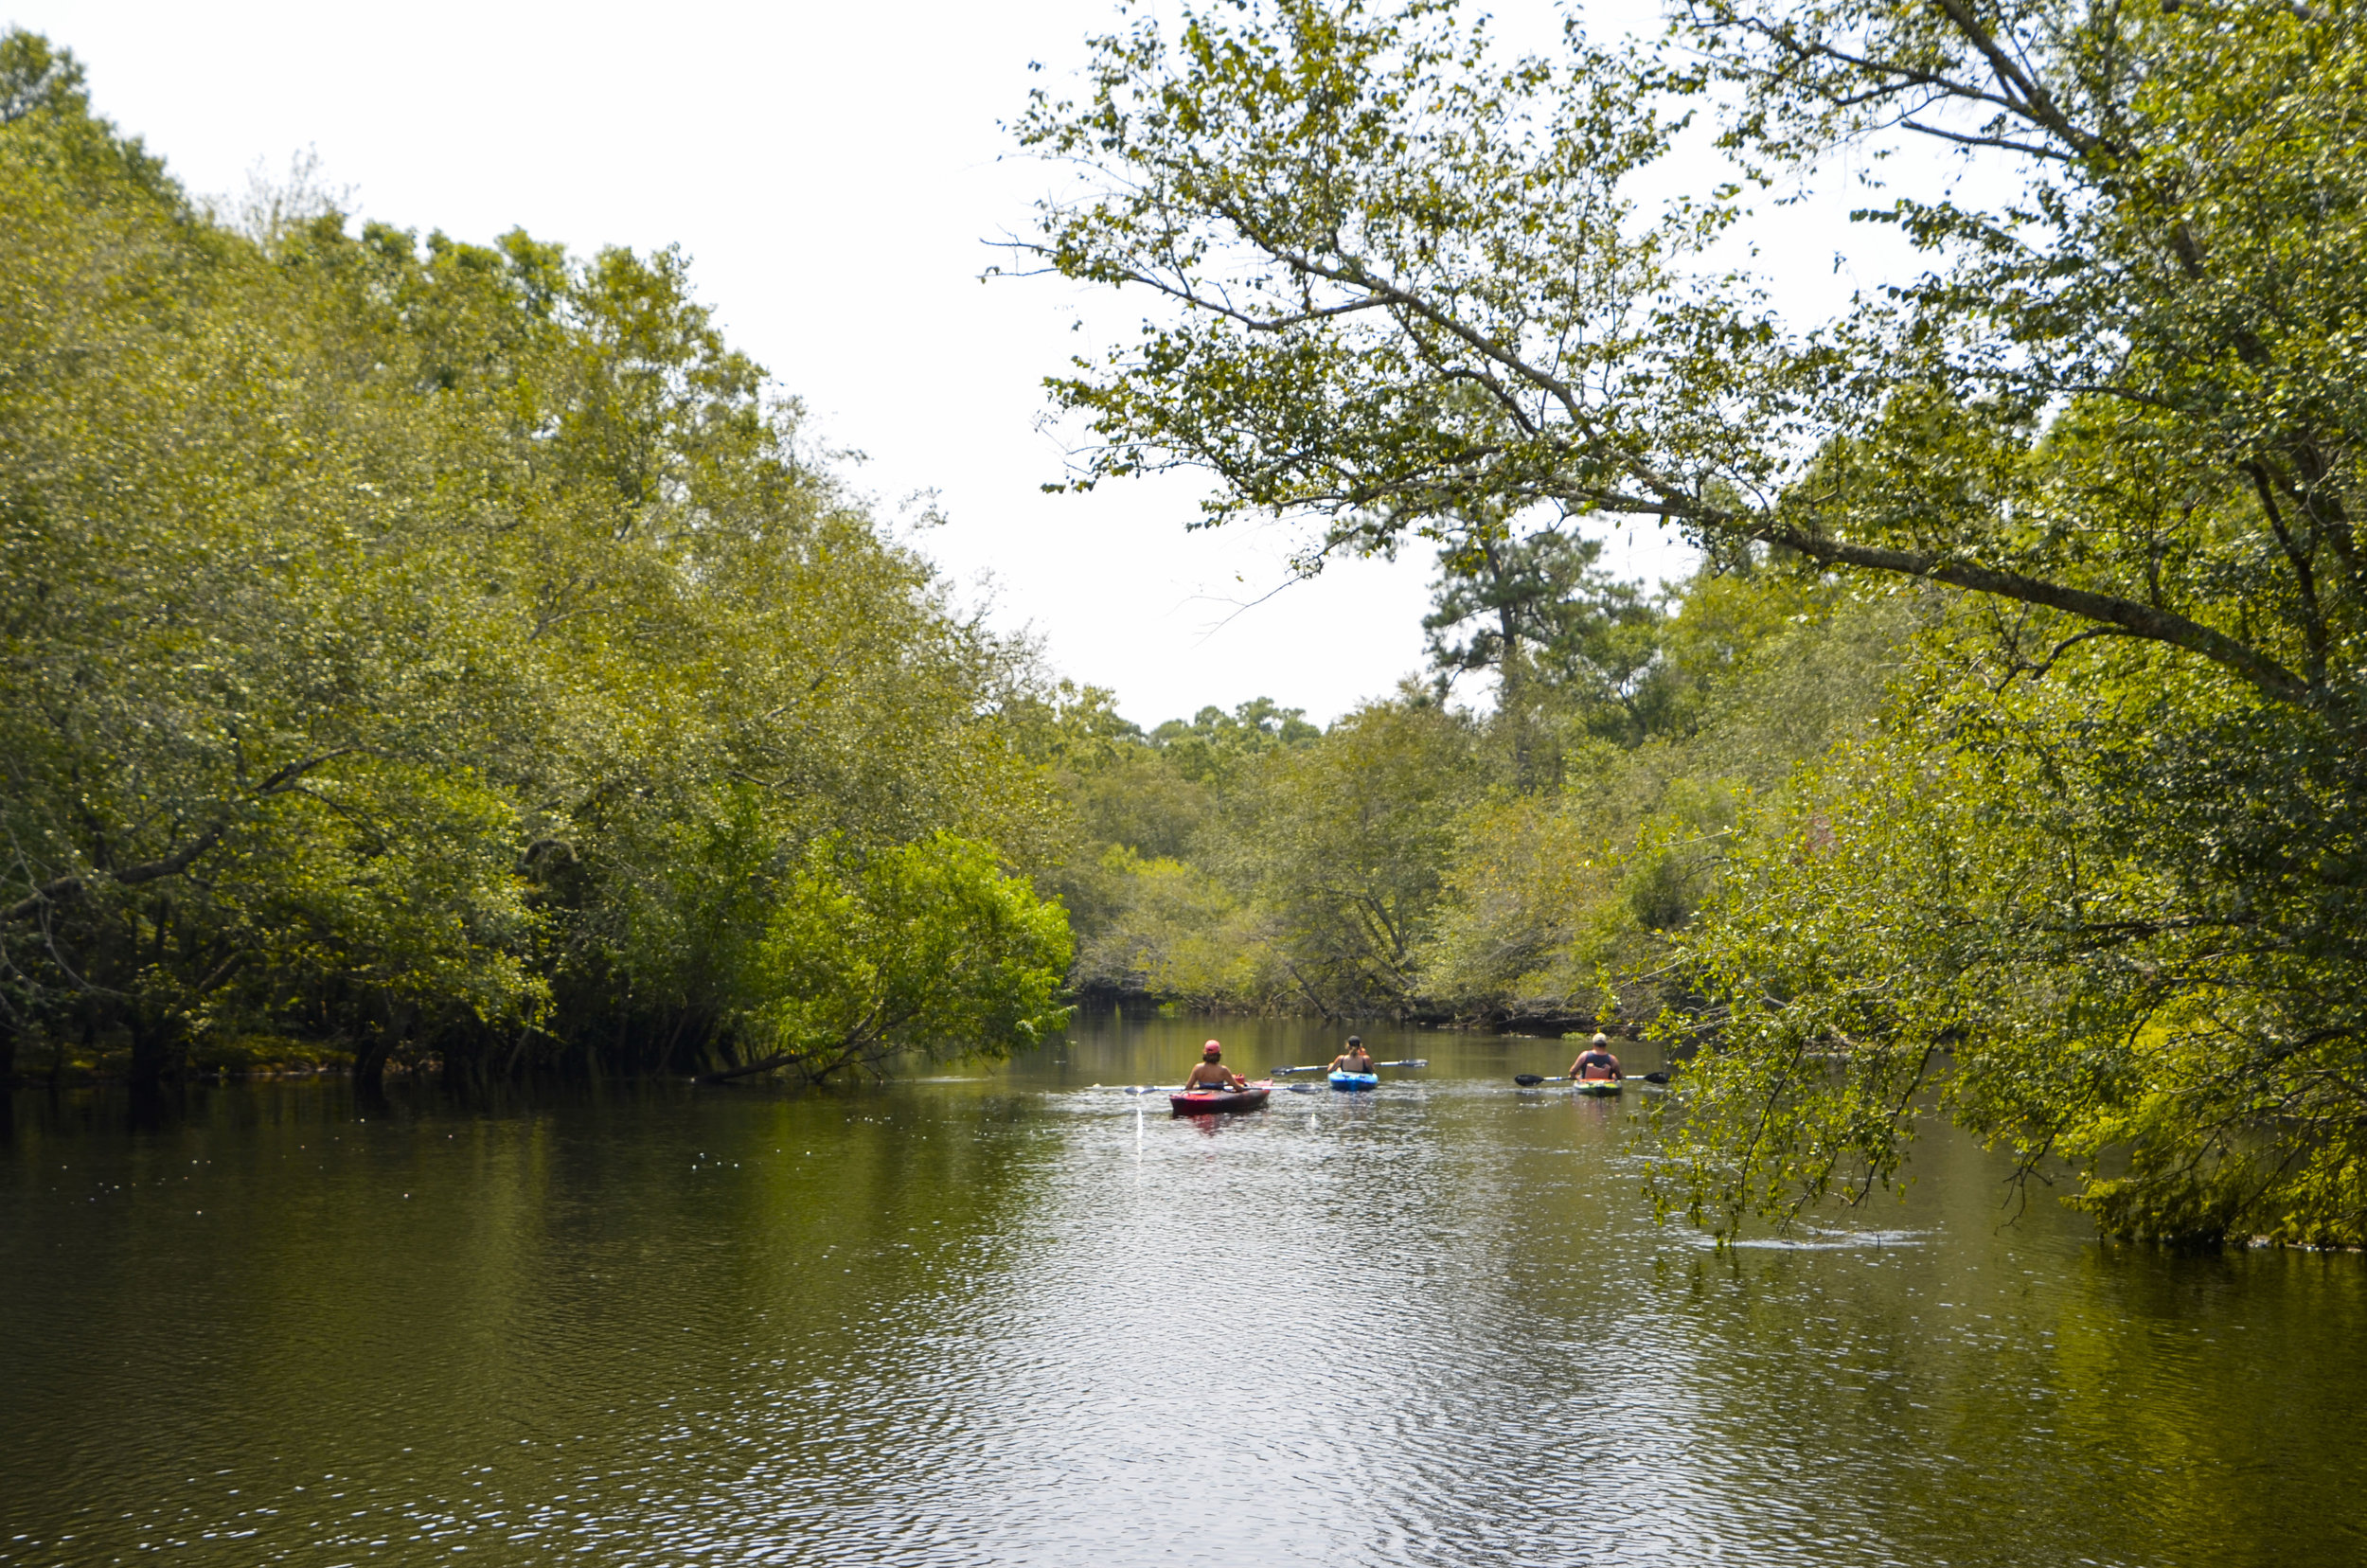 Headed towards the heart of the WRHP from Chris Anderson Landing. [Note: The SCDNR strongly urges all boaters to wear an approved PDF at all times while on the water.]